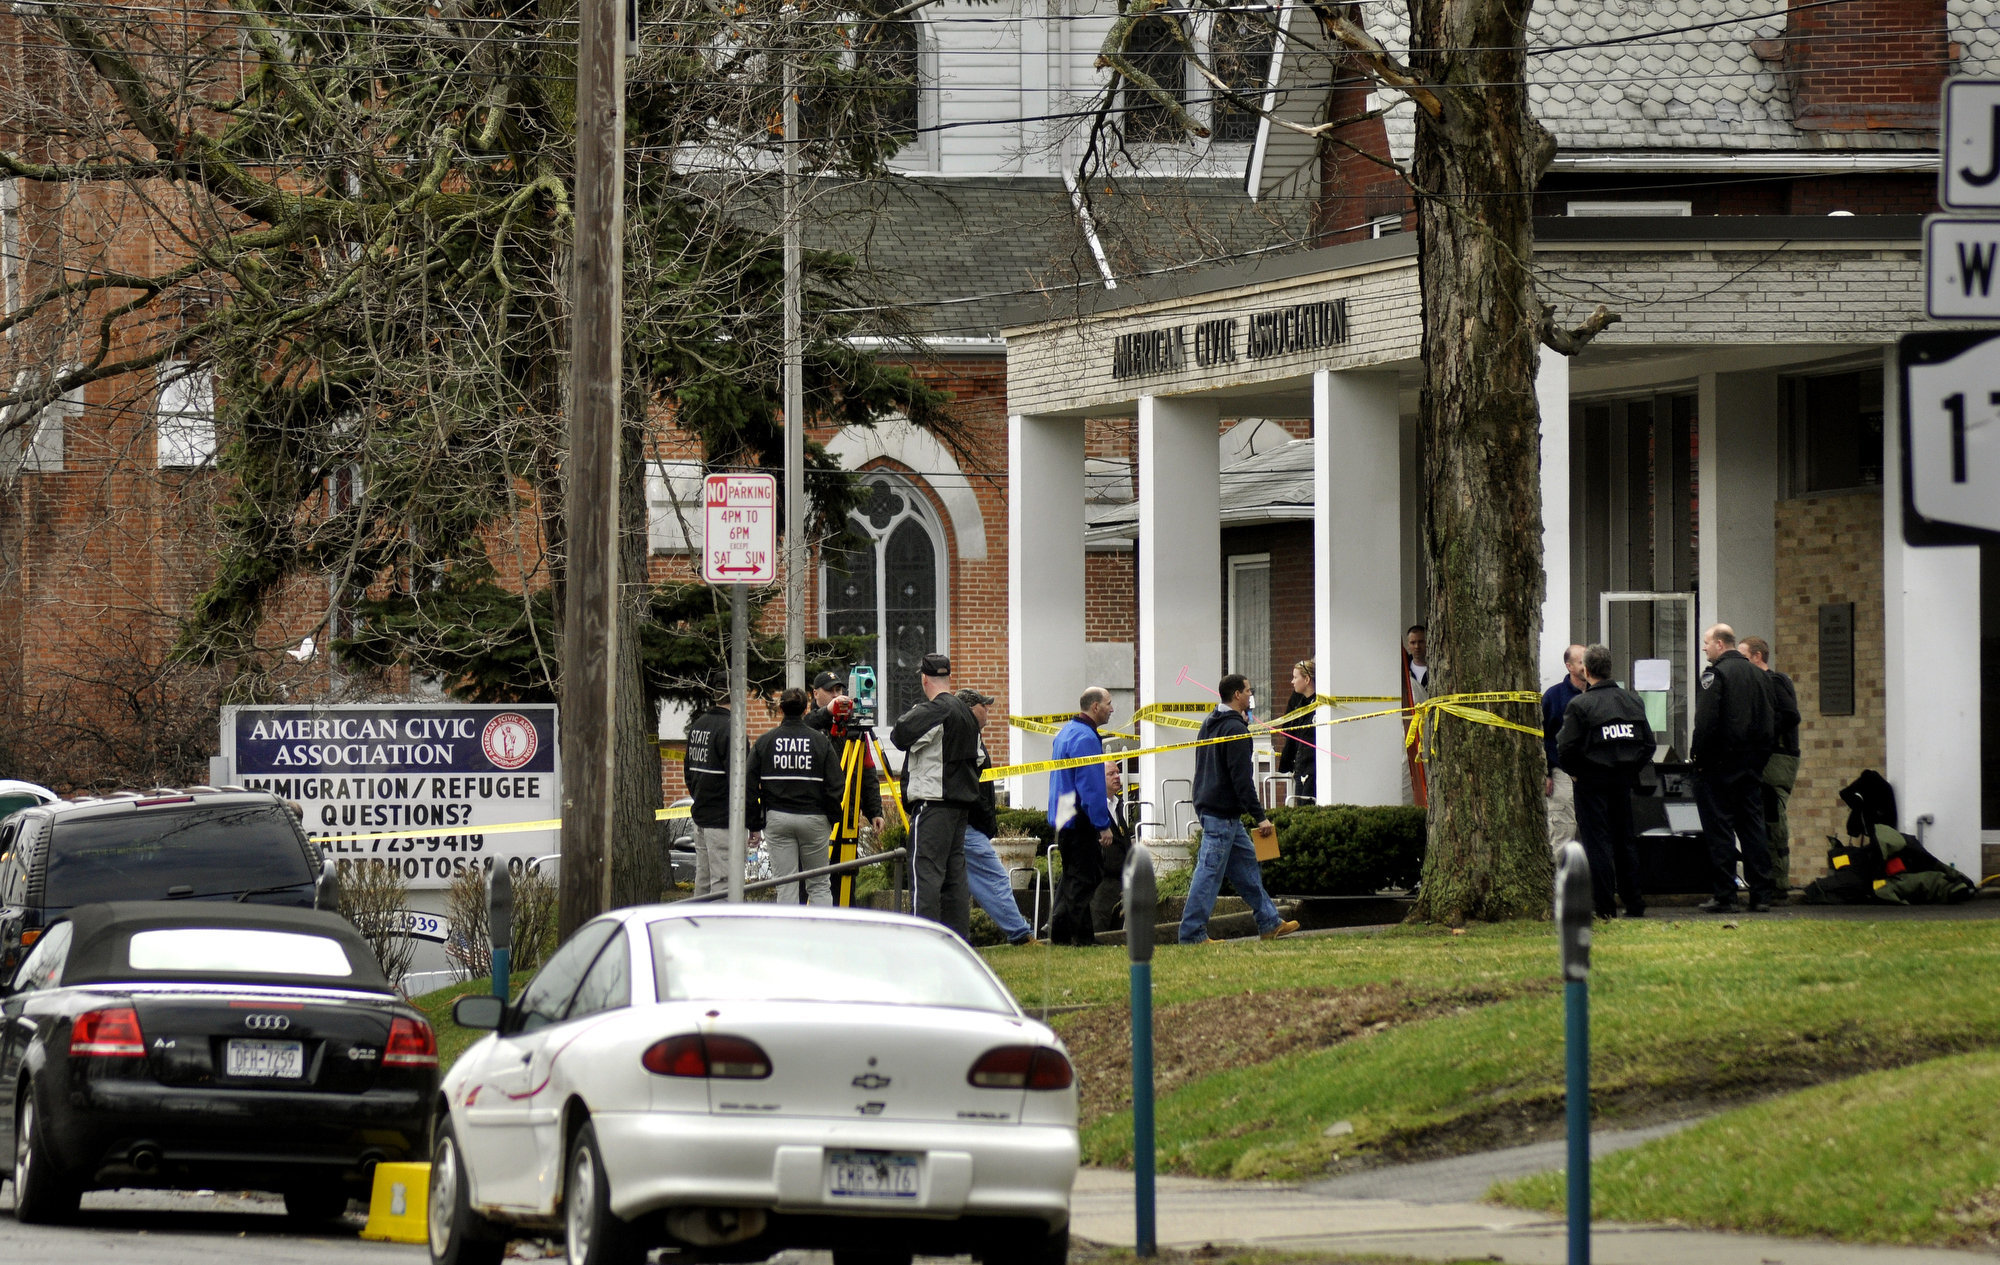 Law enforcement personnel investigate outside the American Civic Association, Friday, April 3, 2009, in Binghamton, N.Y.